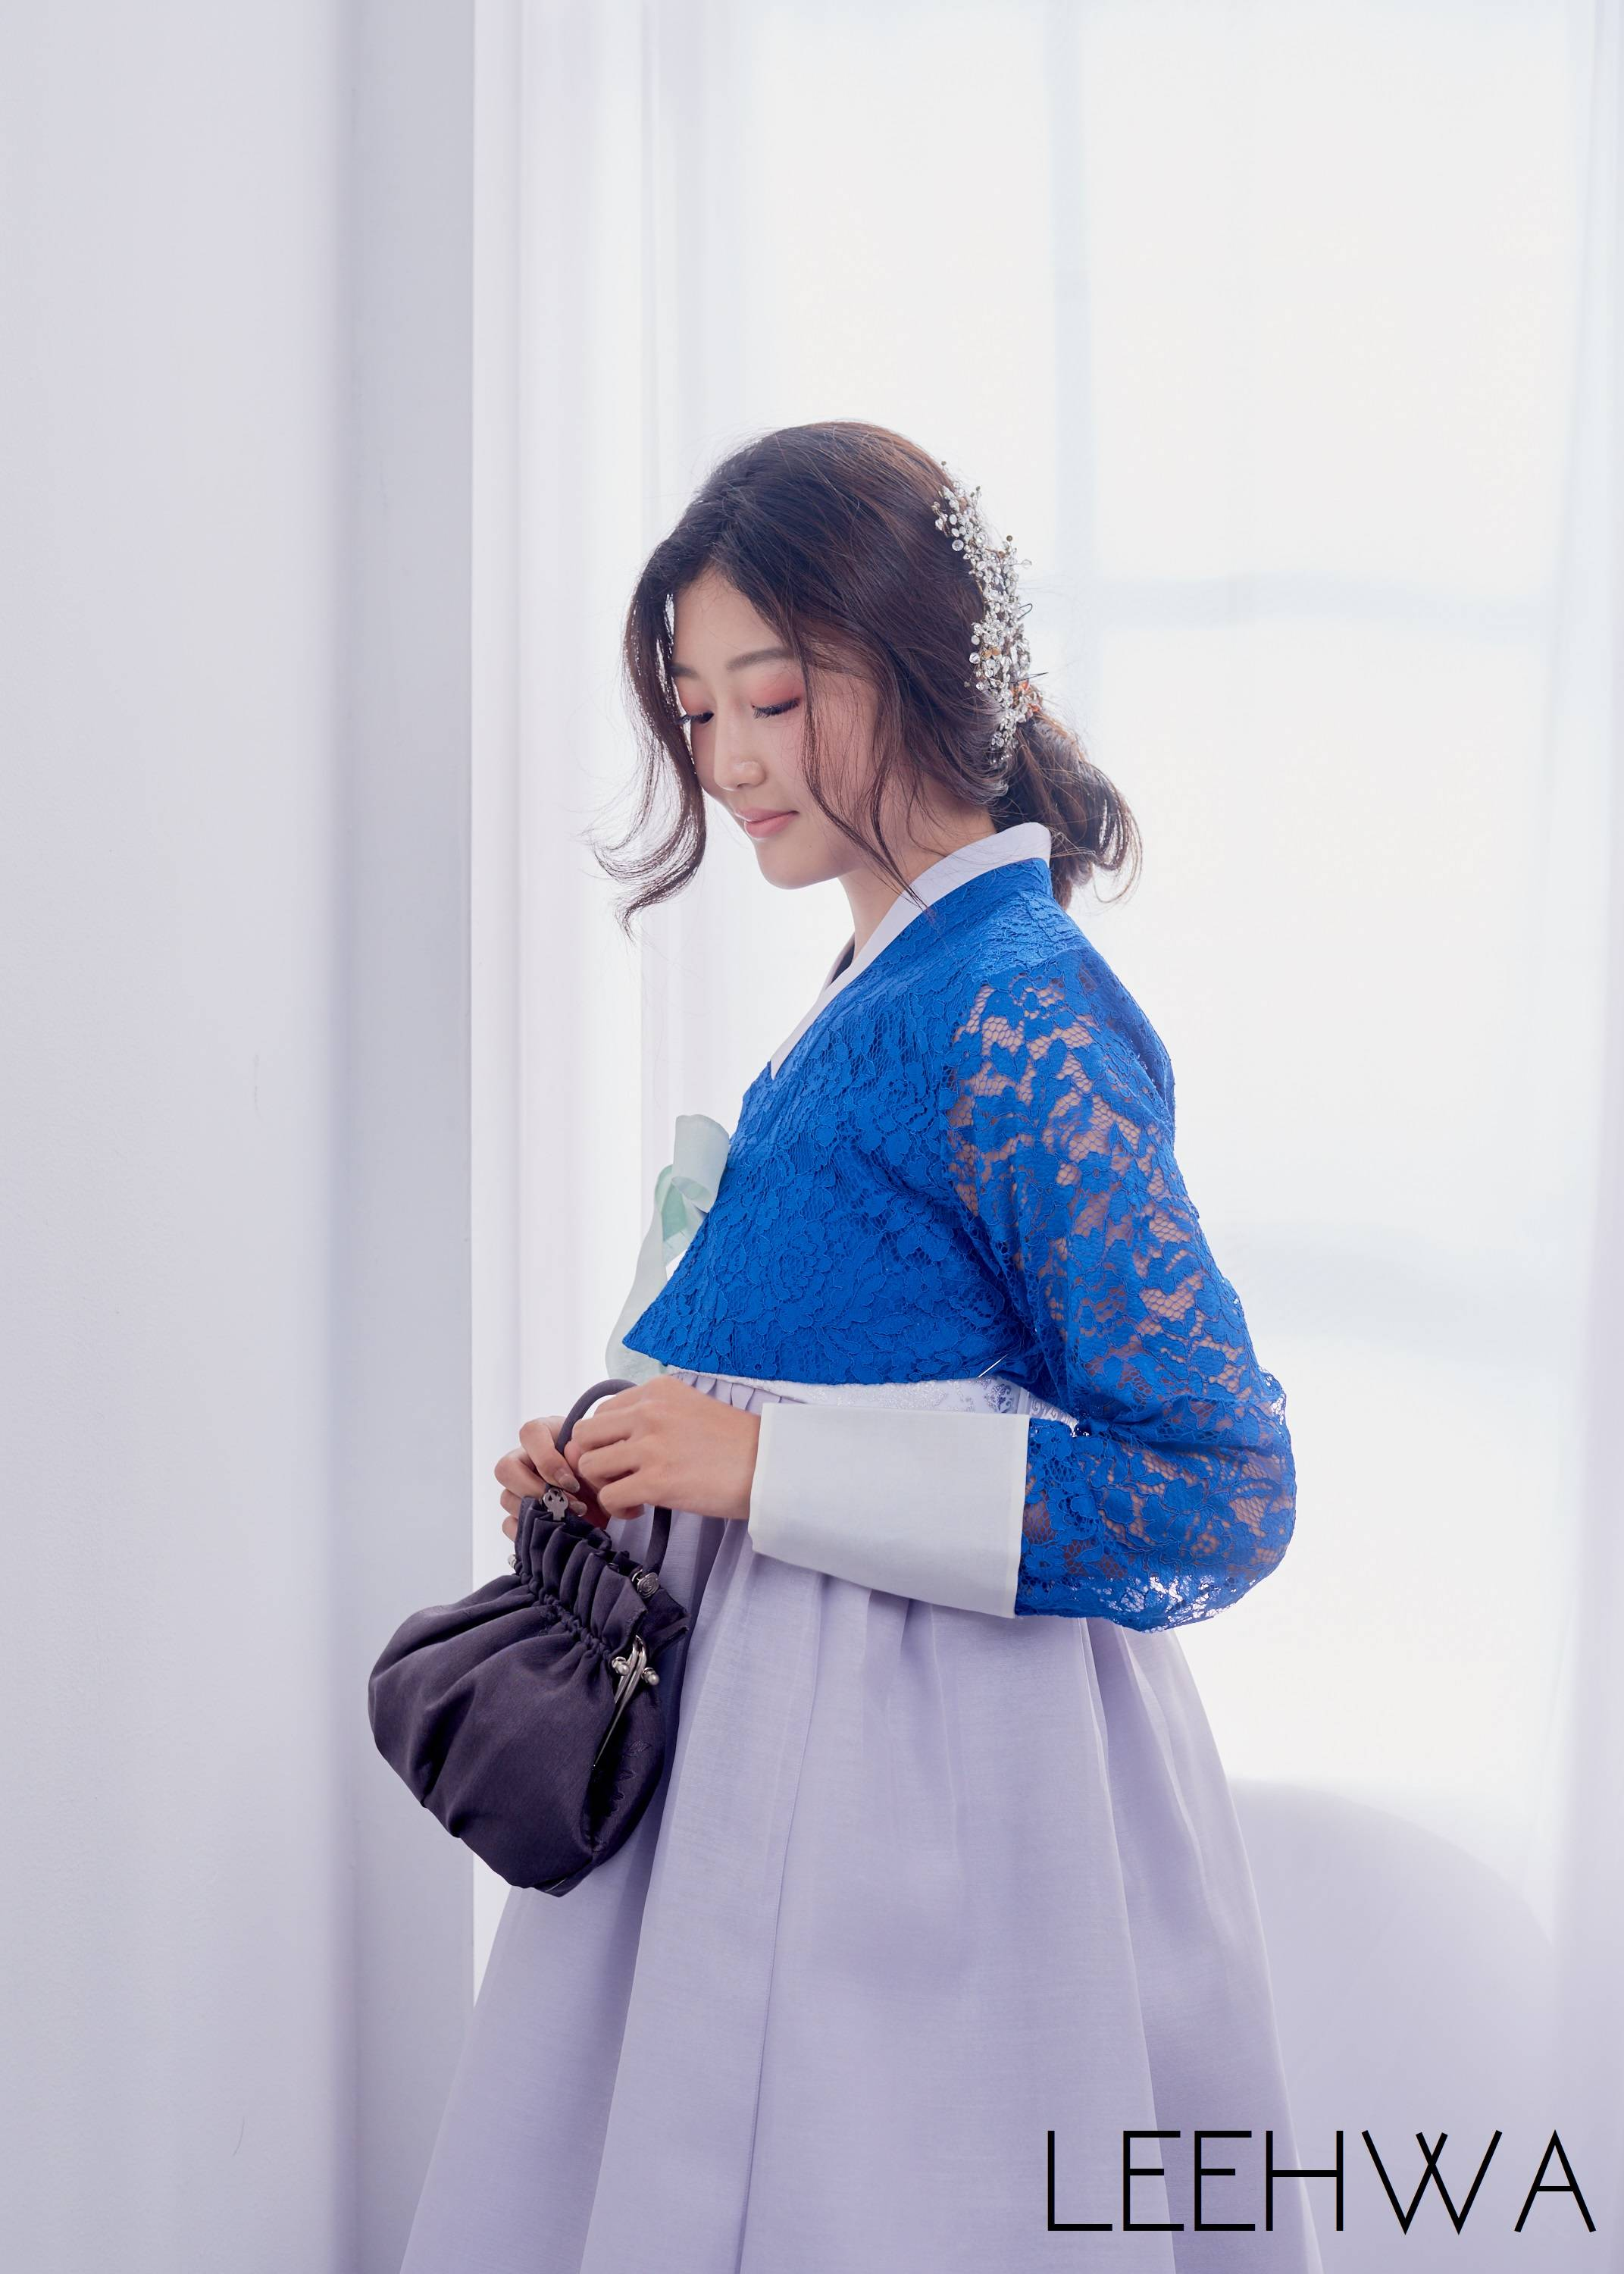 Modern hanbok with lace top and grey skirt